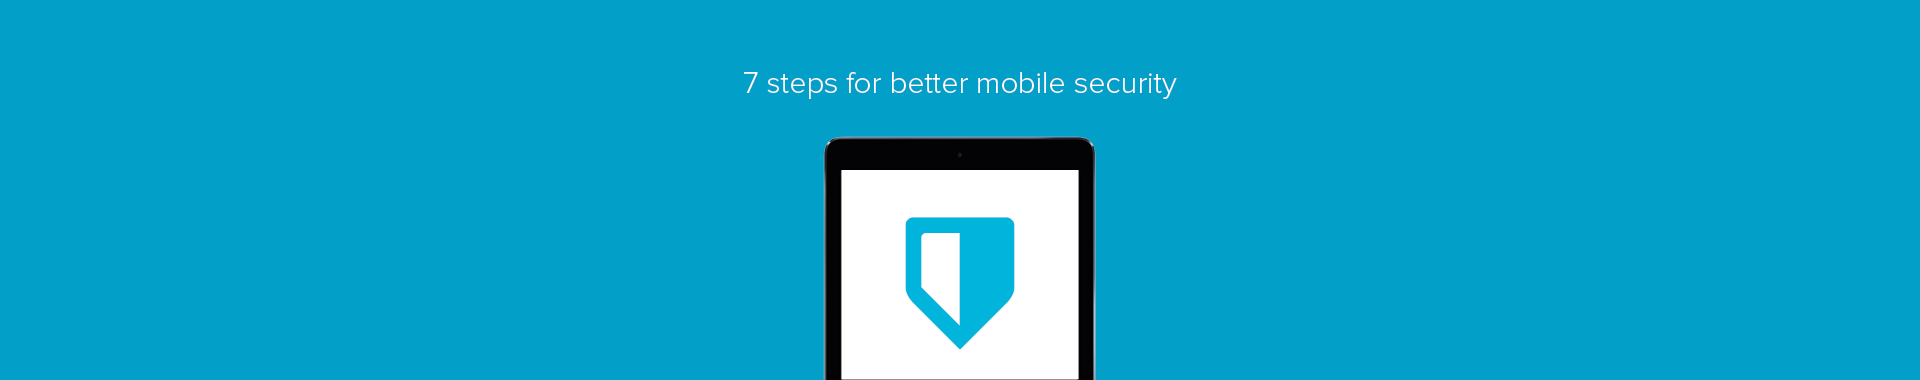 7 tips to improve your mobile security